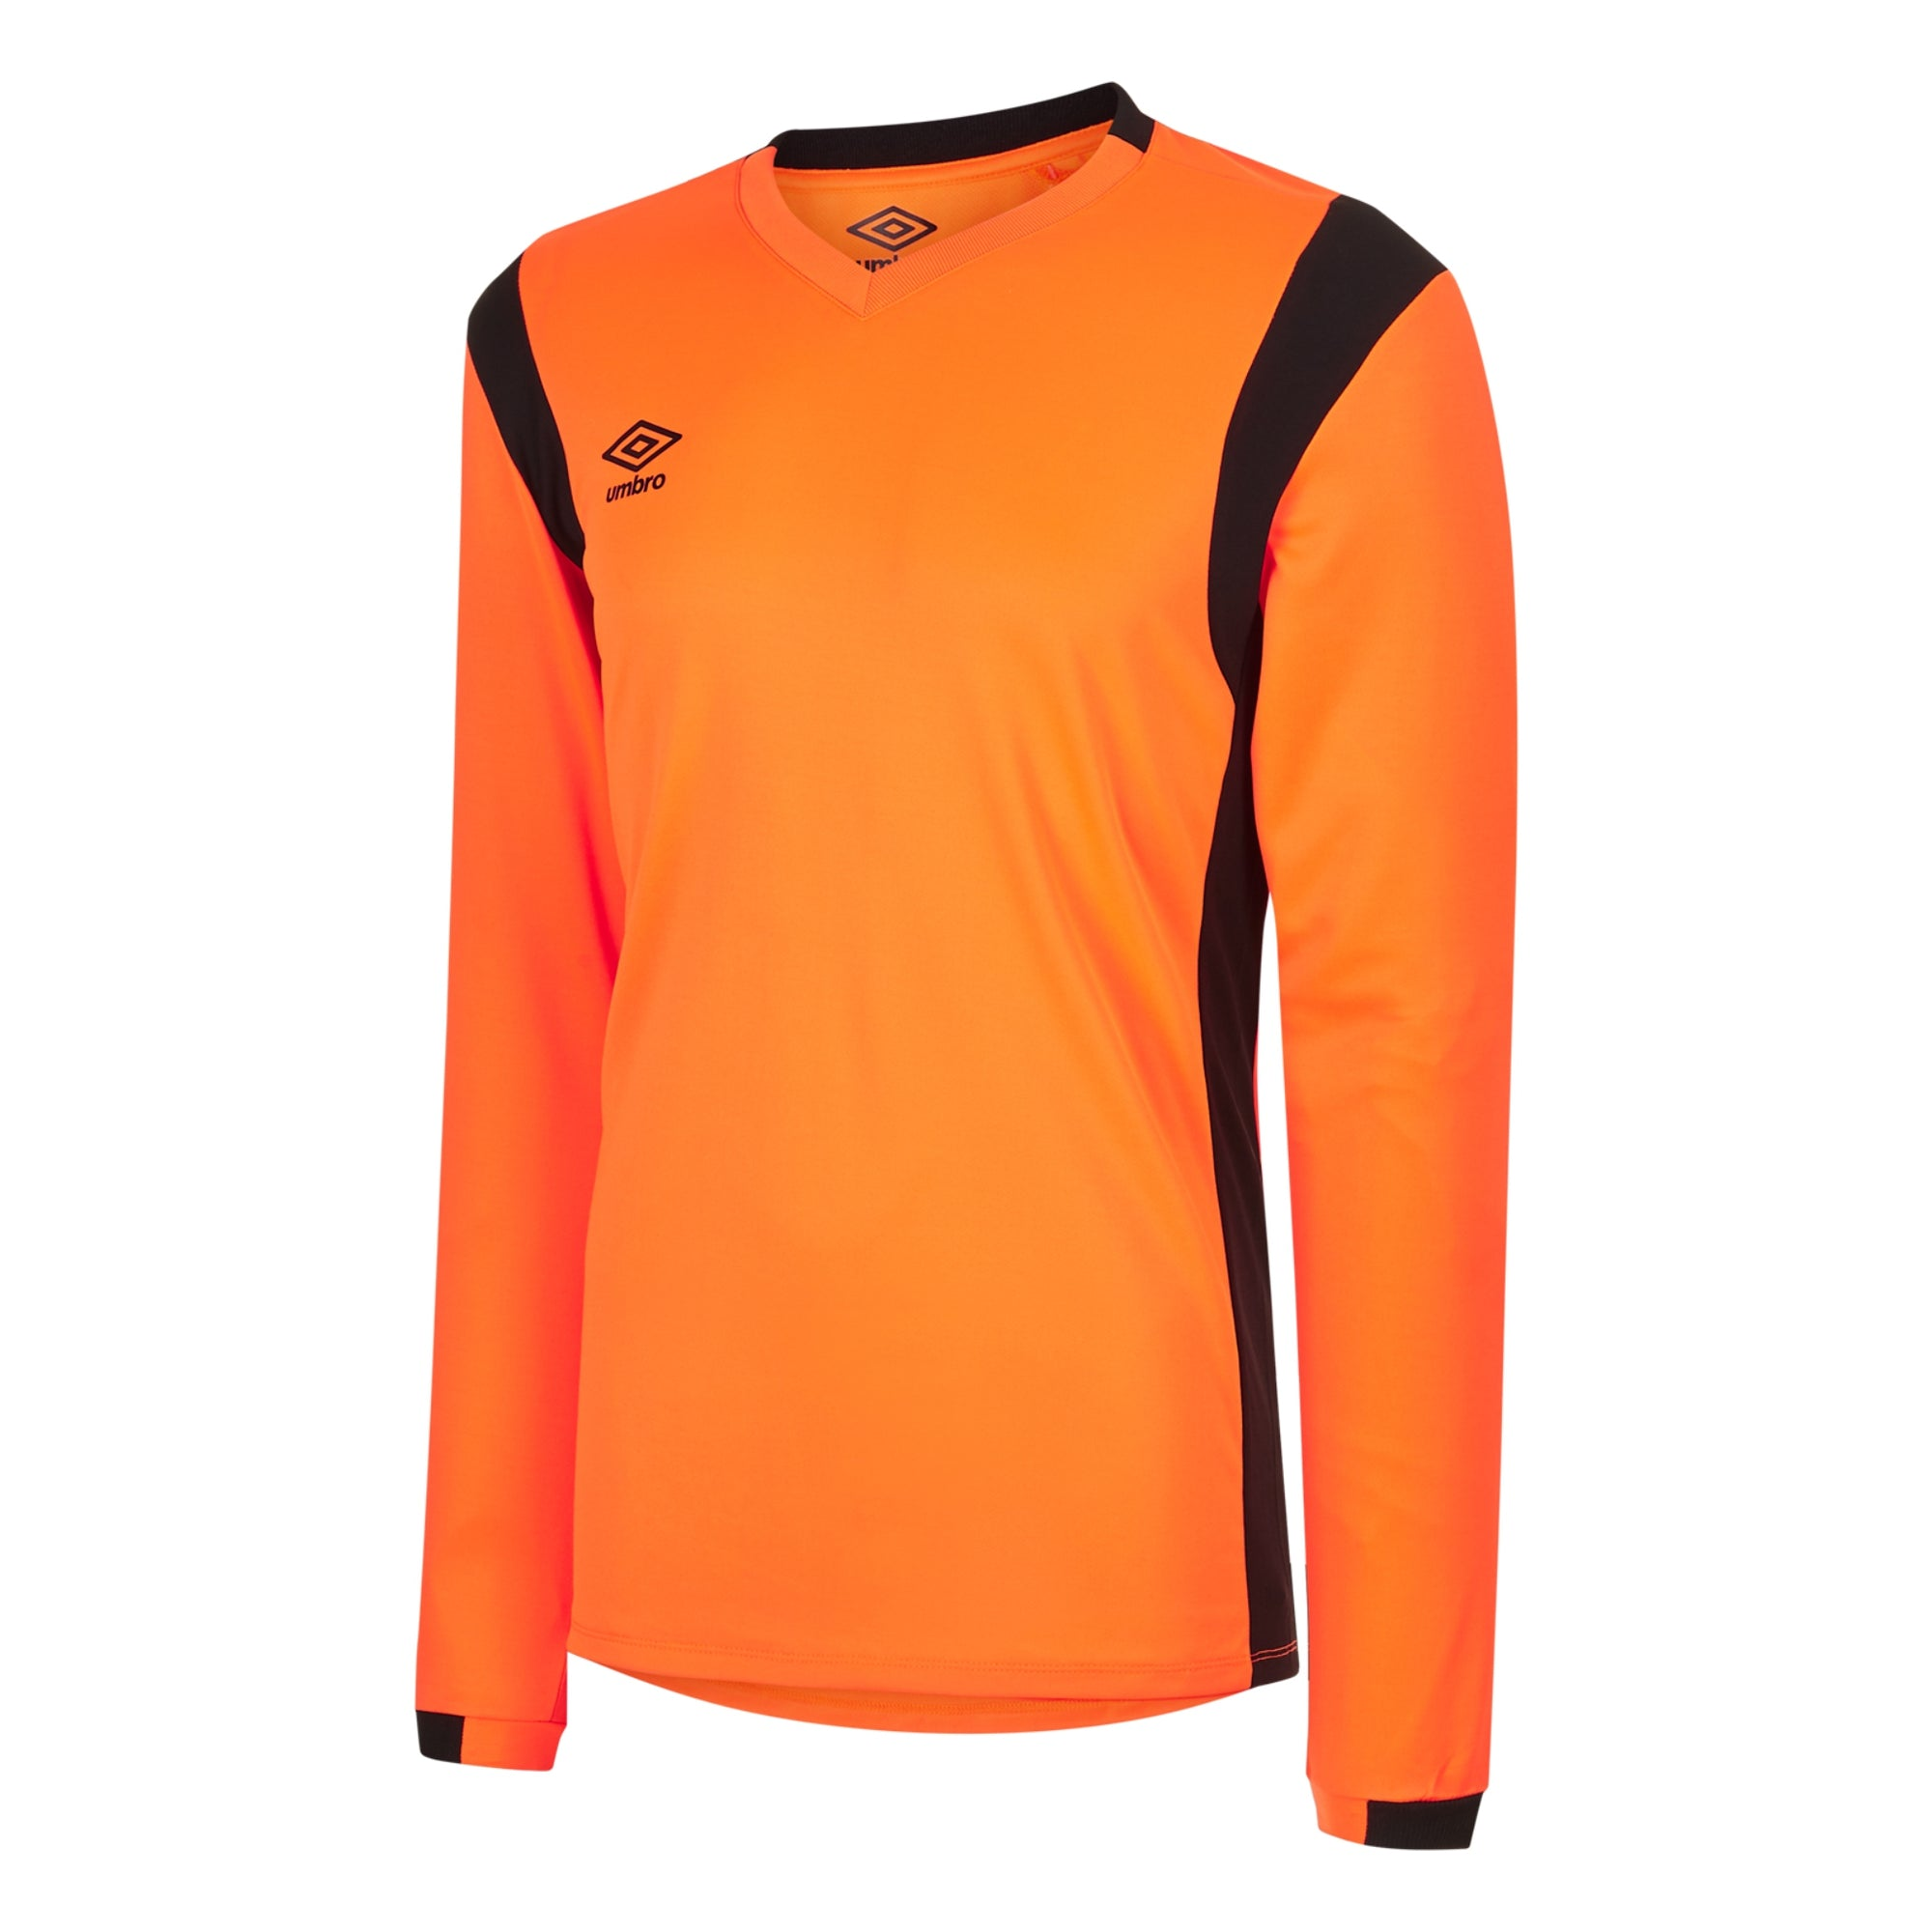 Umbro Spartan Jersey LS - Shocking Orange/Black